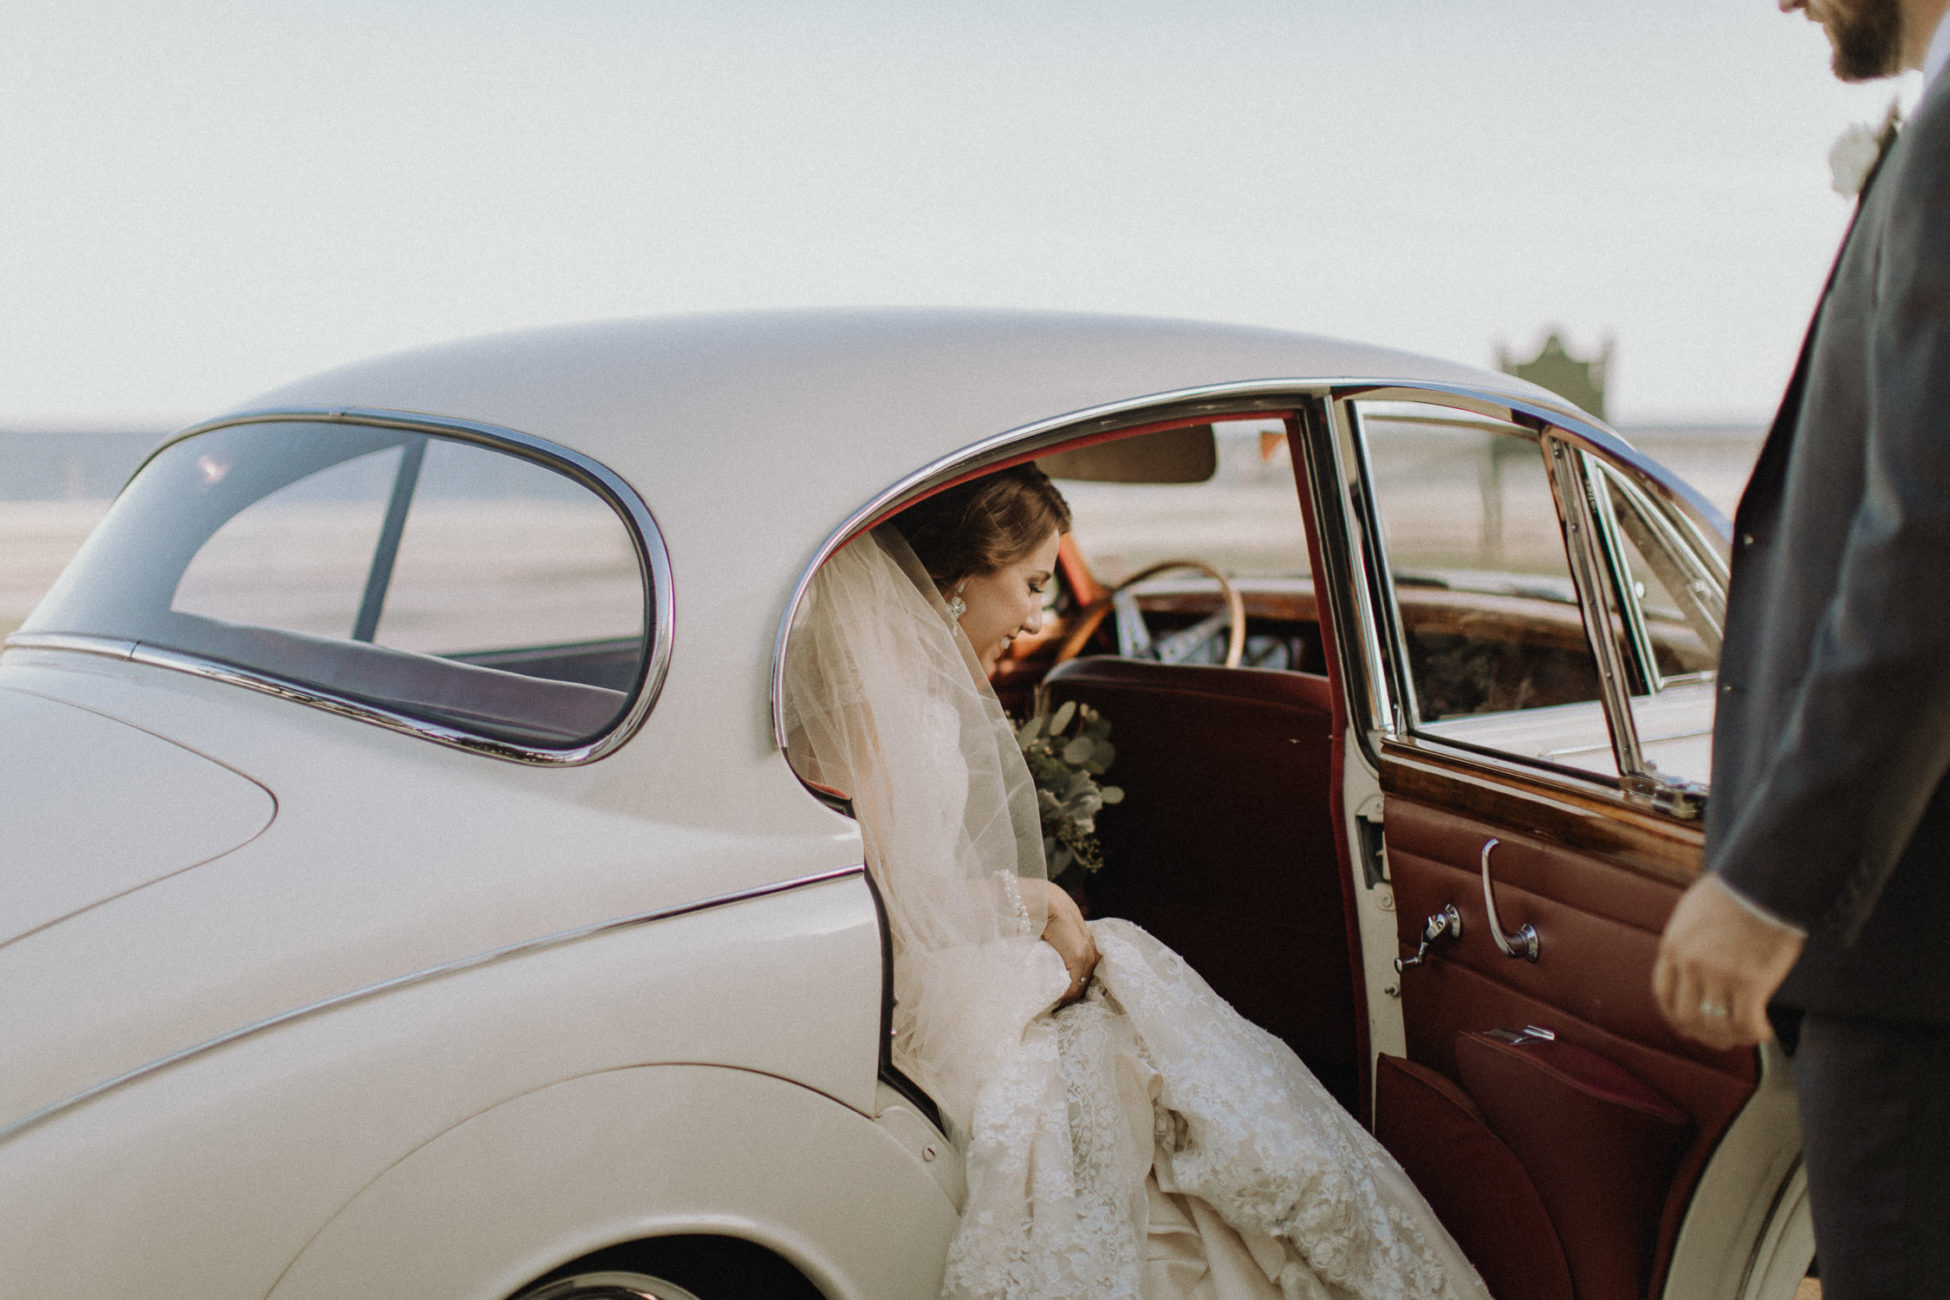 Bride getting into vintage car in Bay St. Louis, Mississippi